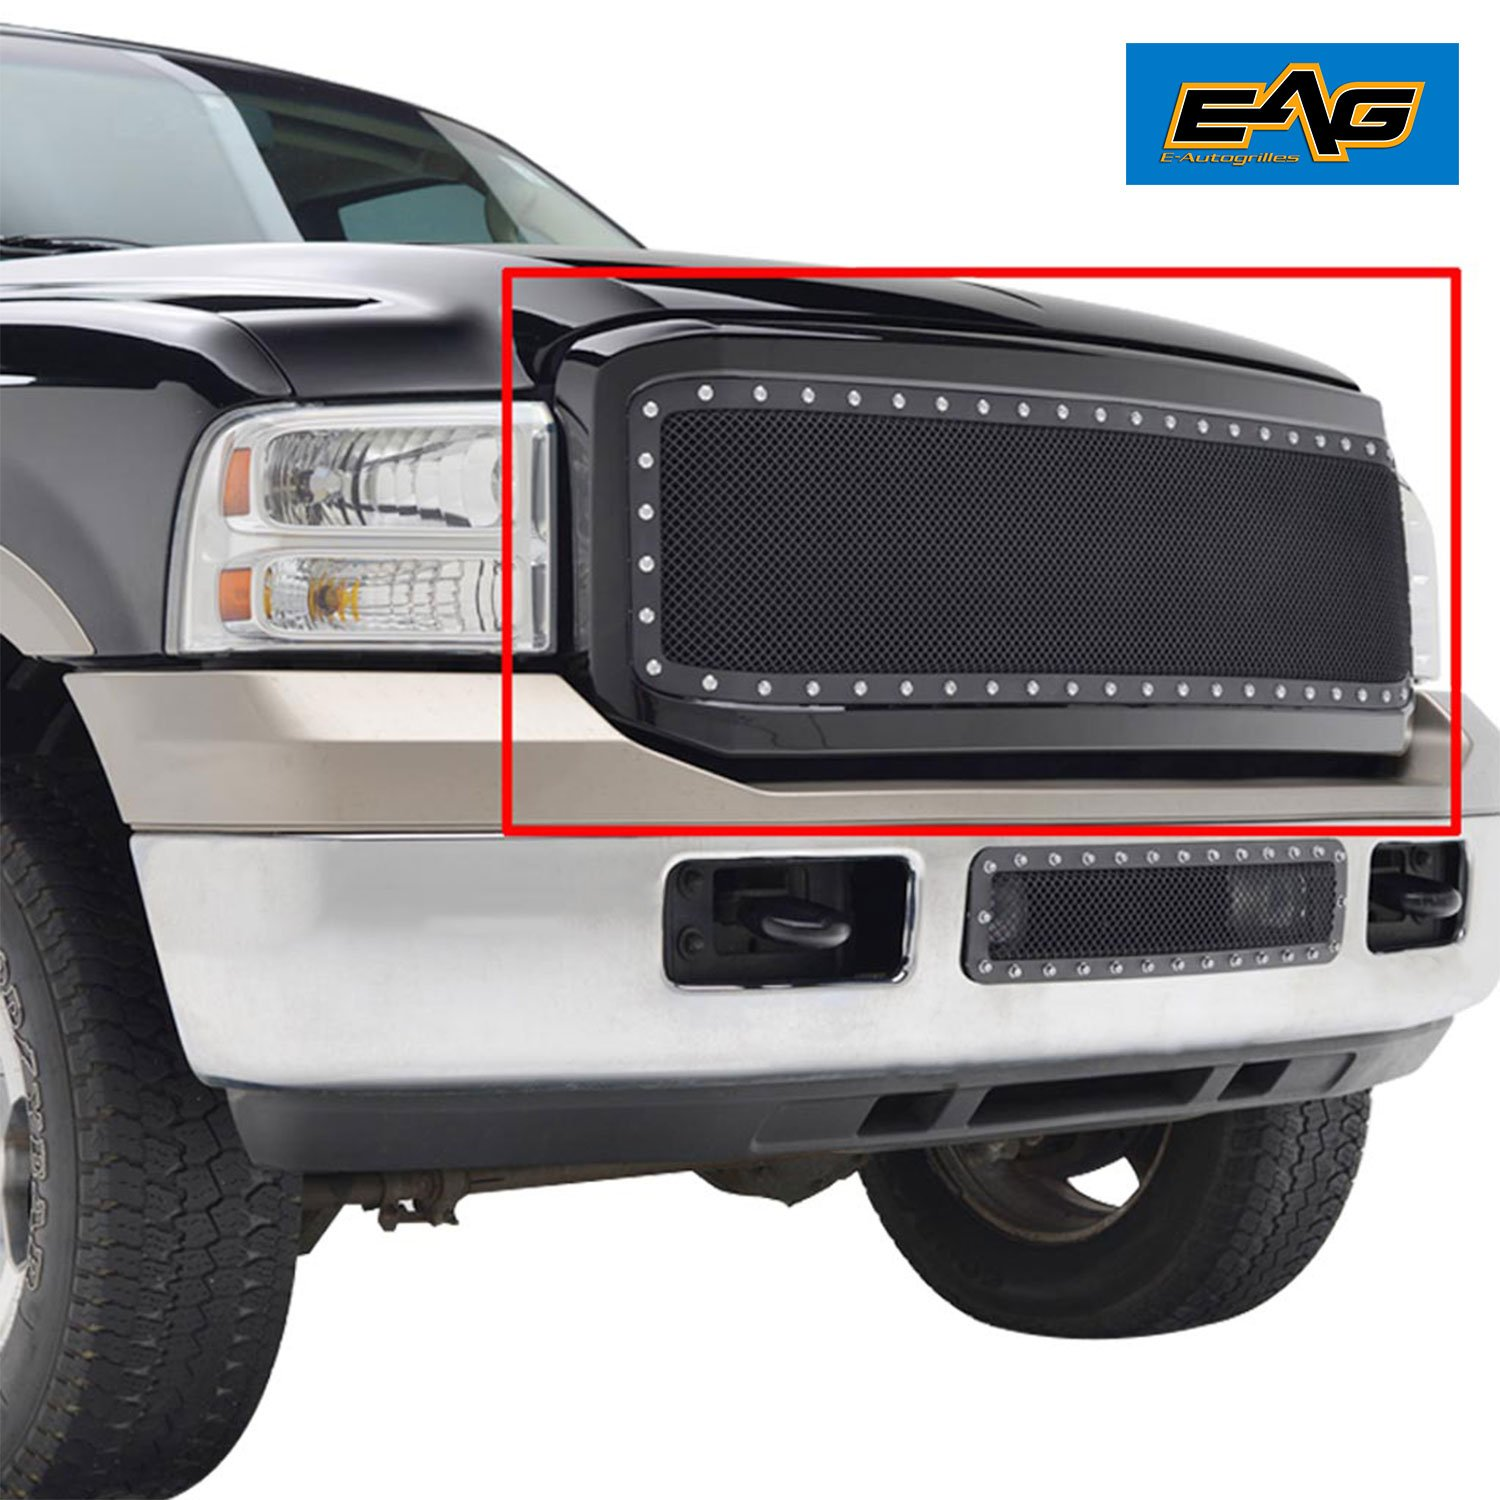 EAG Wire Mesh Grille With ABS Shell for 05-07 Ford Super Duty F250/F350/F450/F550